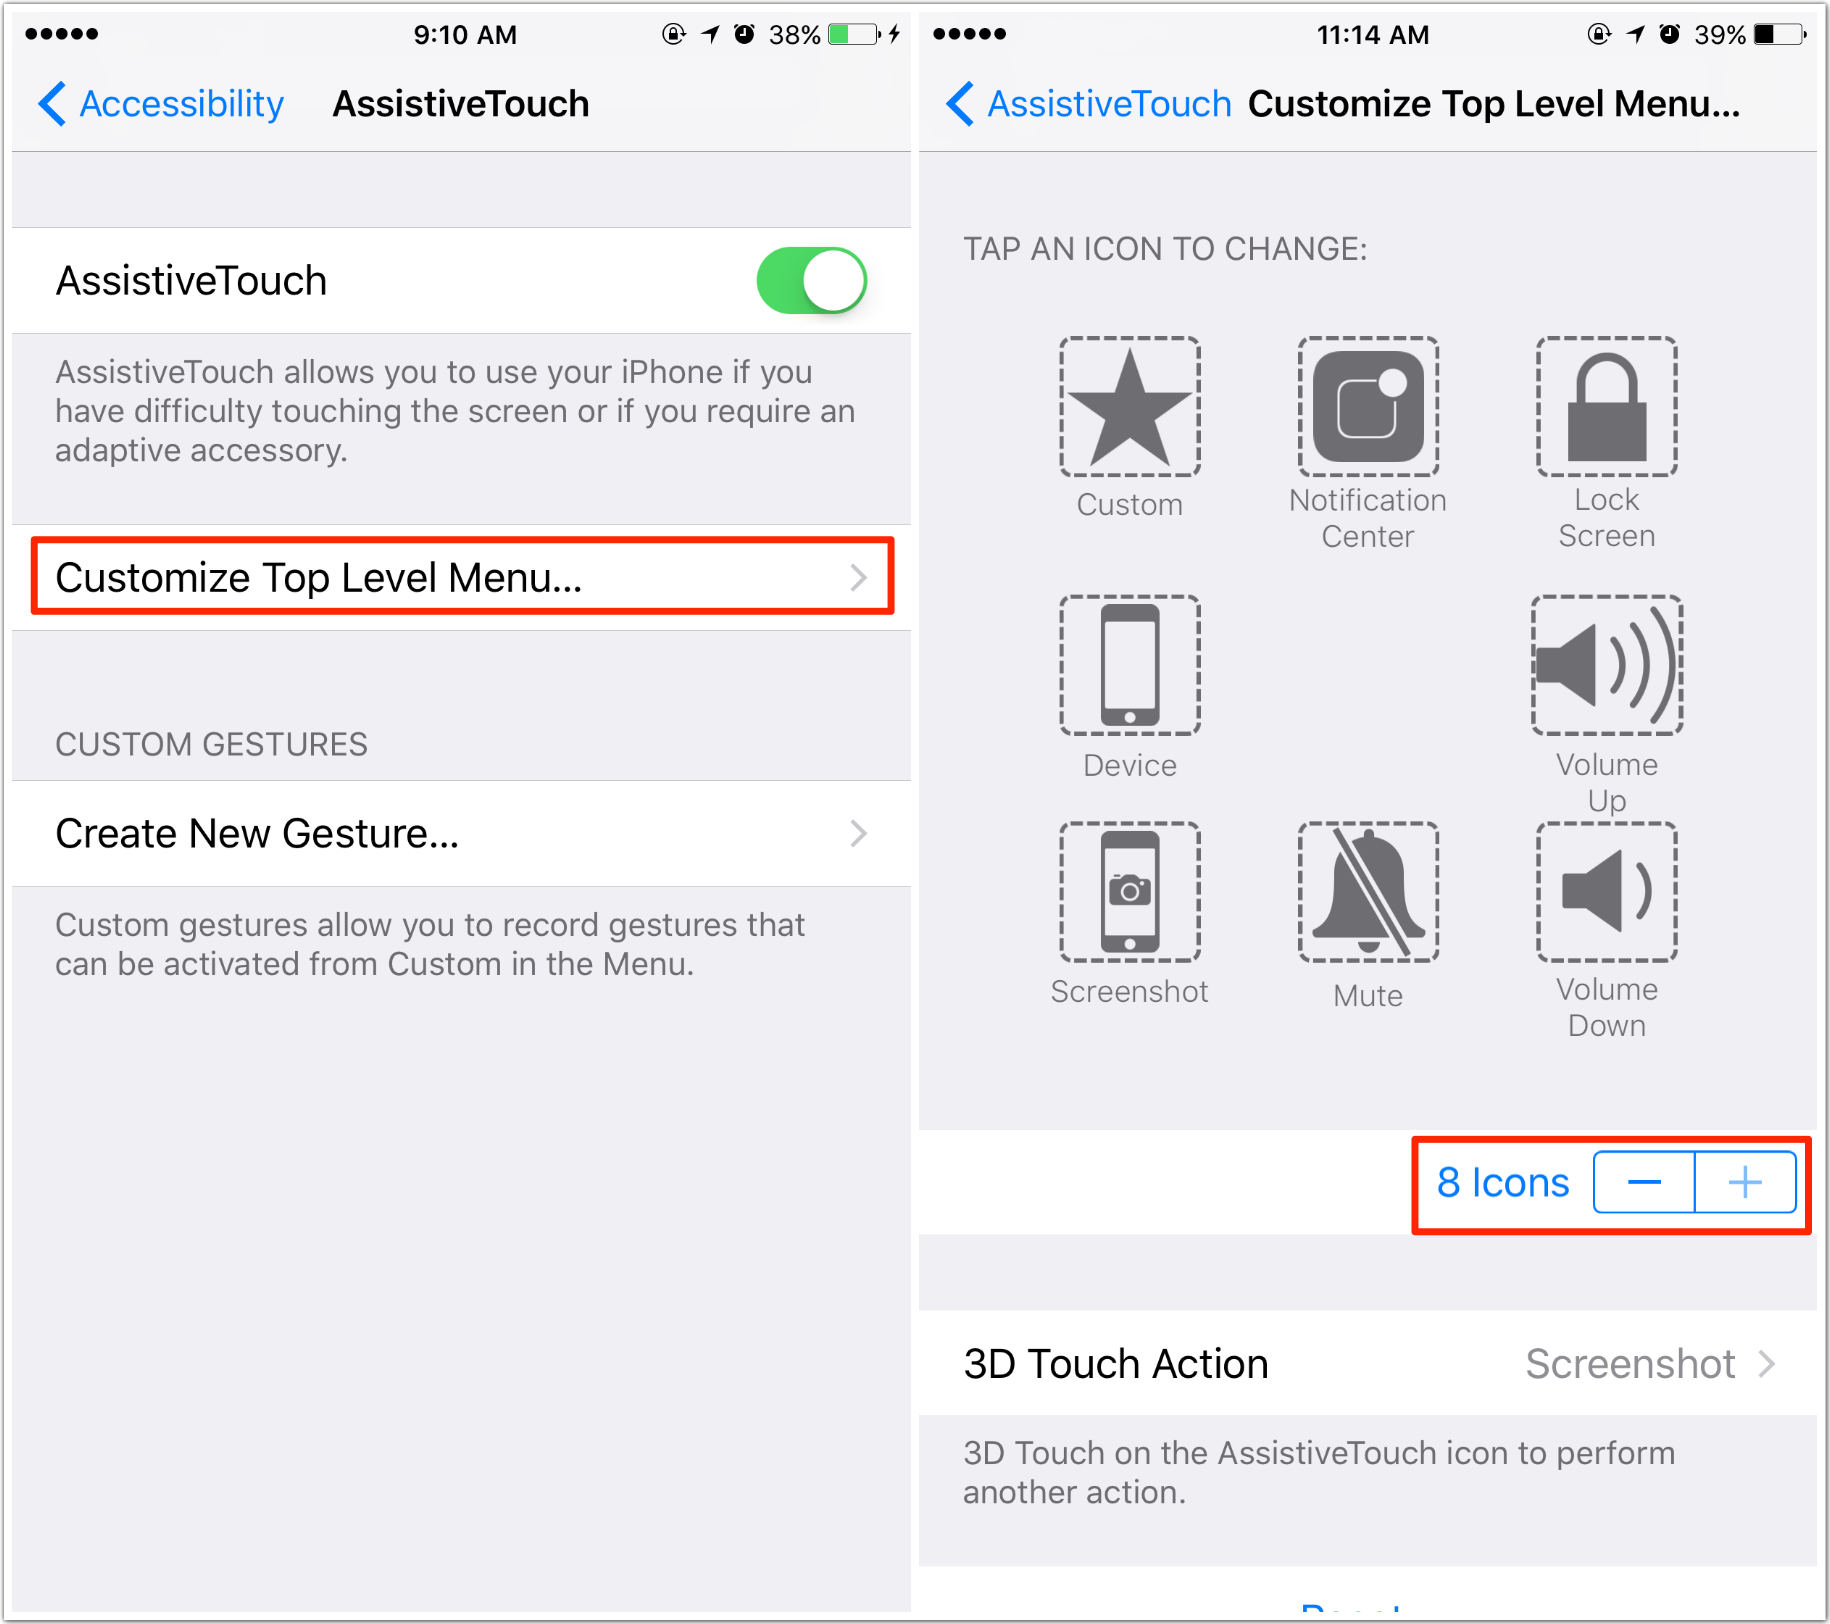 How to Use AssistiveTouch in iOS 10